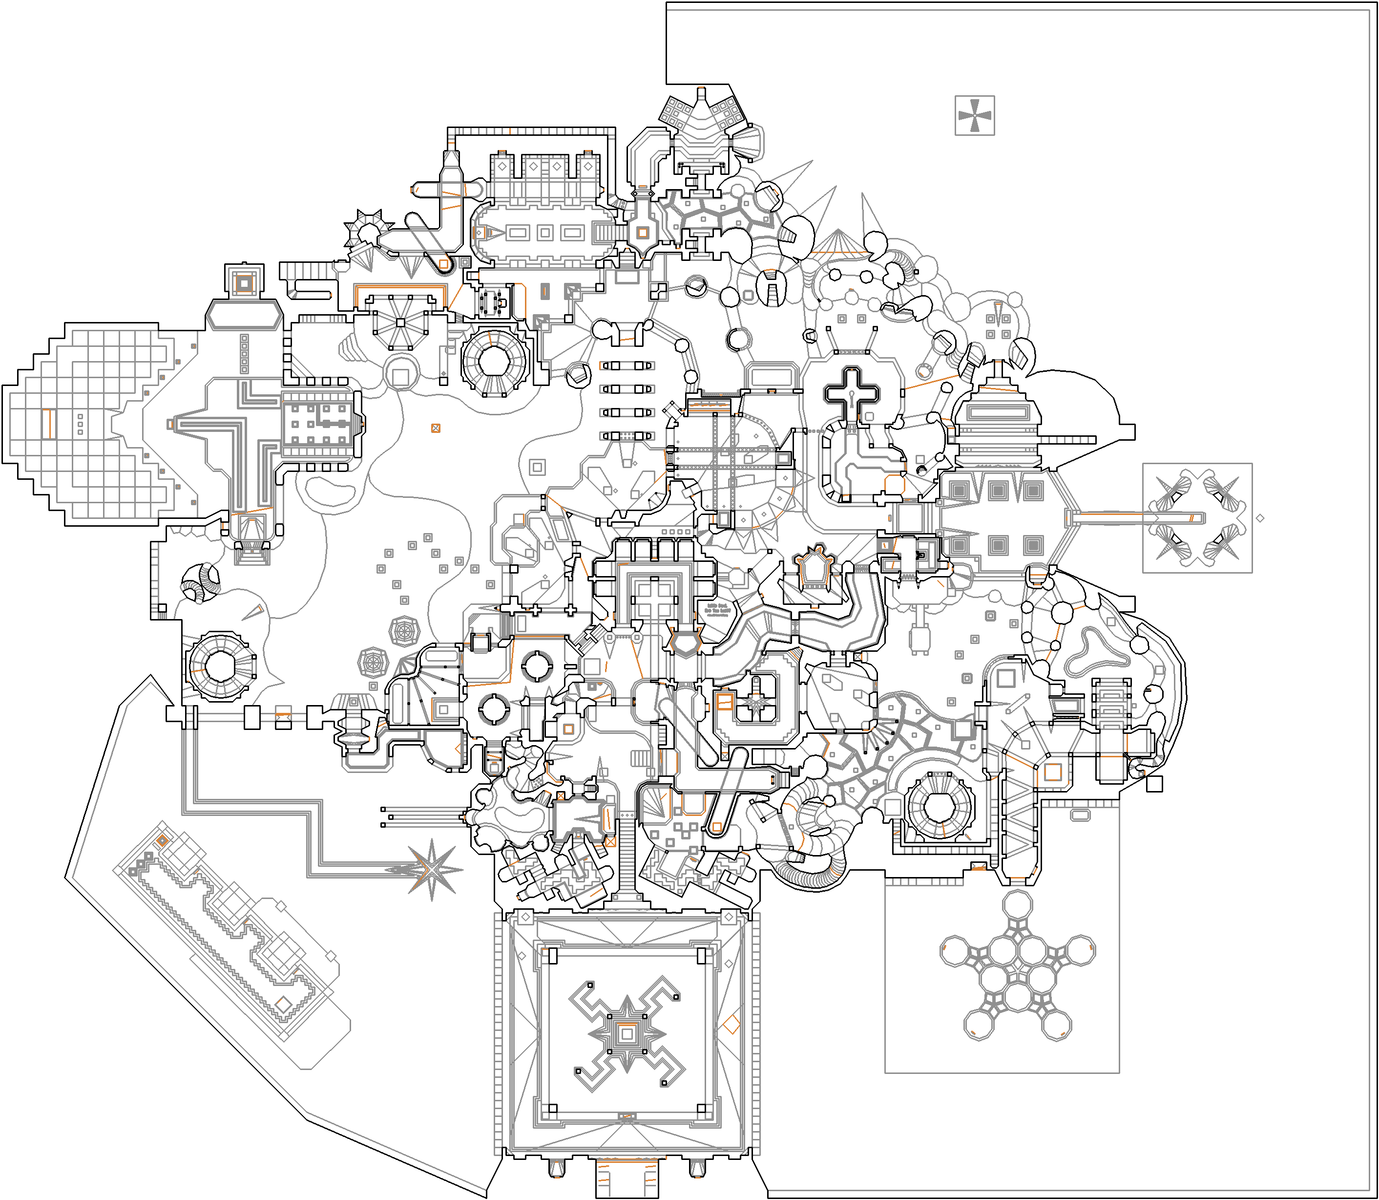 Magnolia_MAP03_map.png.2b244a530ef1c3fcf9415bf74779807e.png